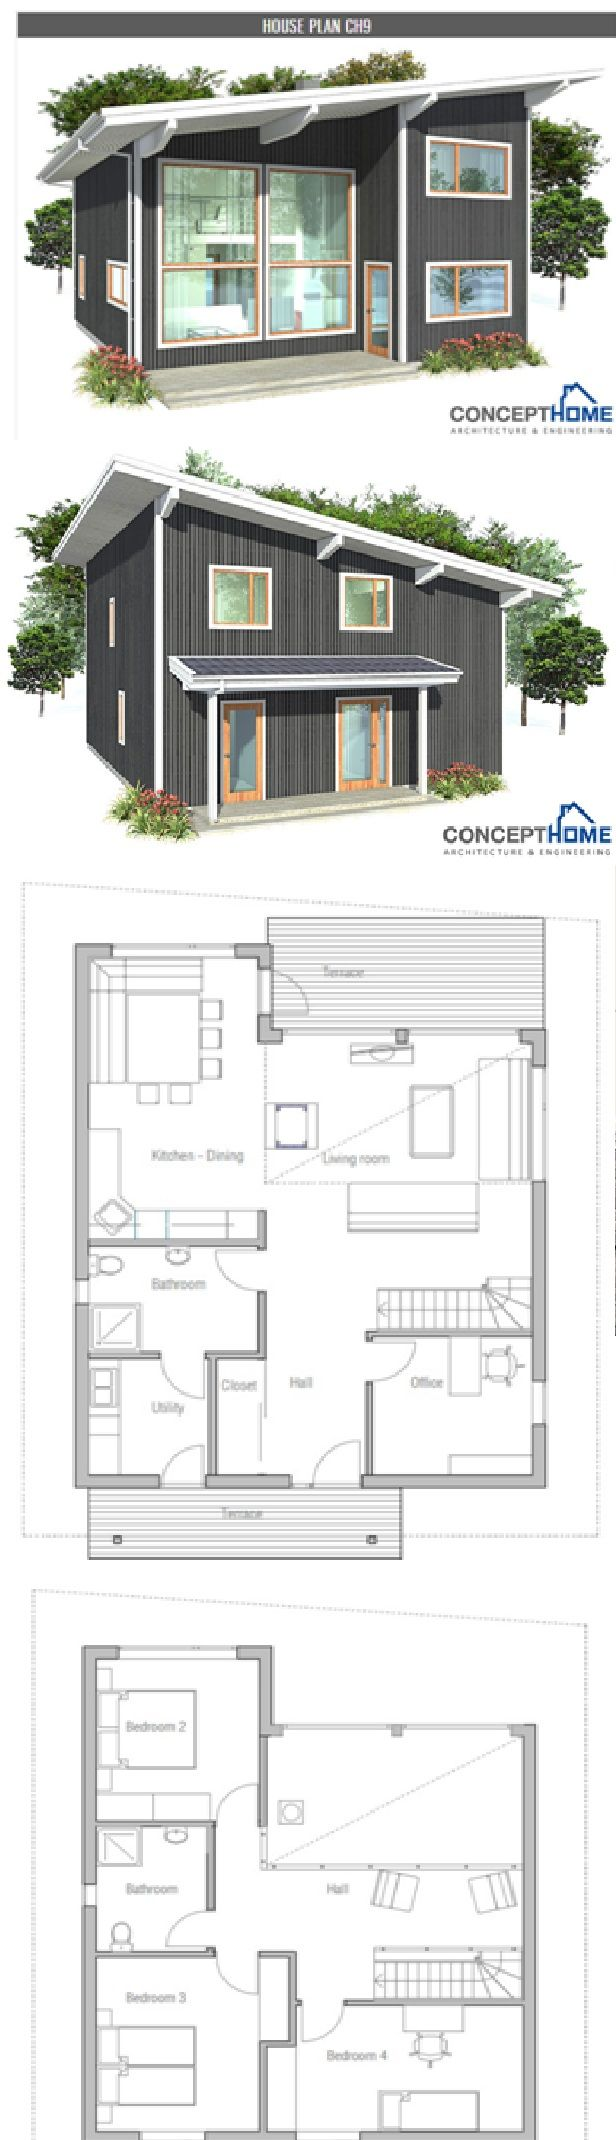 Container House Concept Homes Main